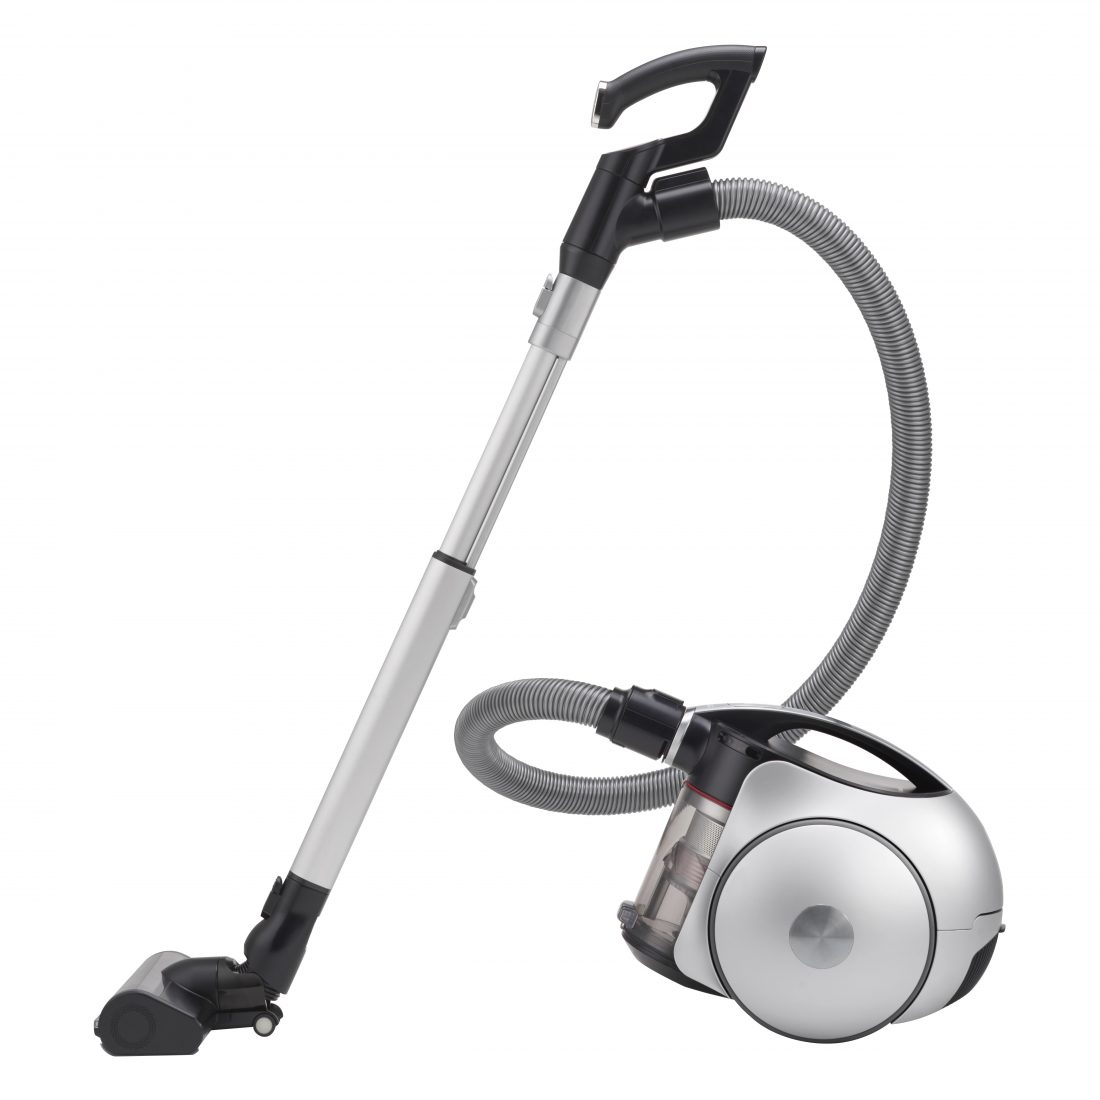 Side view of the LG CordZero Canister vacuum cleaner